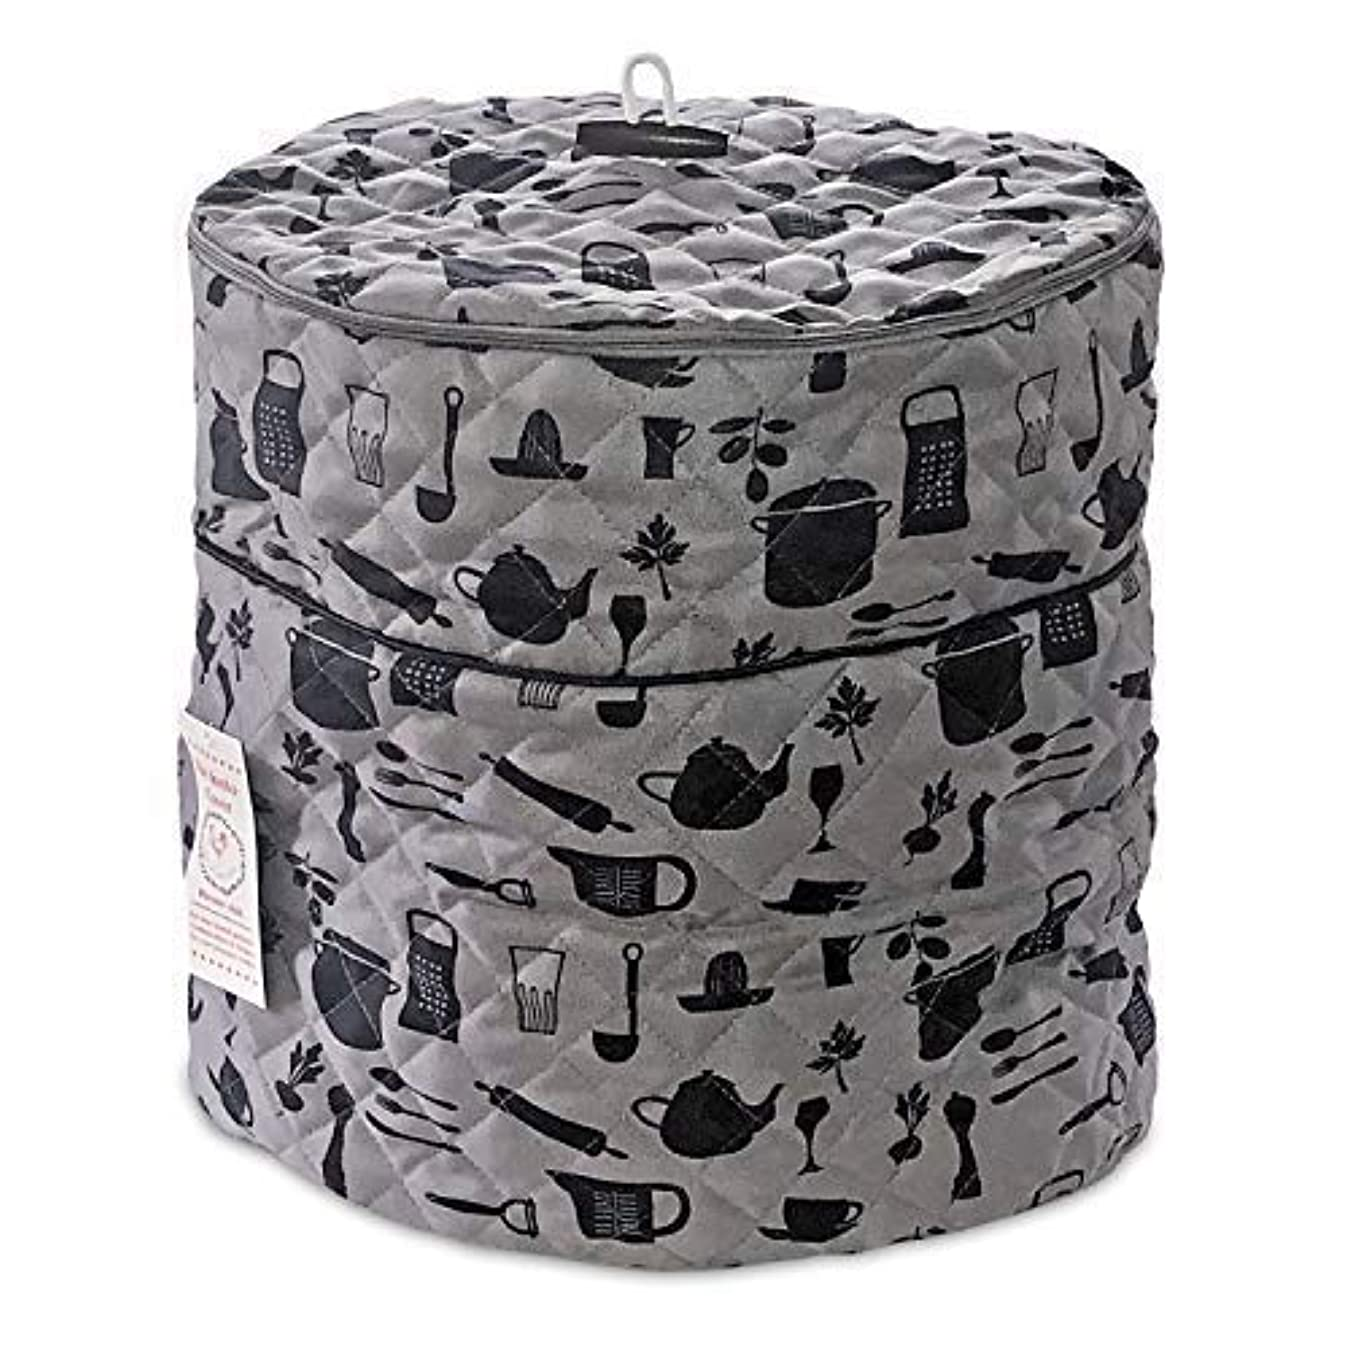 Debbiedoo's Pressure Cooker Cover - Custom Made Accessories - Fits 6.5 QT and 8 Qt. for Use with Ninja Foodi (Gray and Black - 6.5Qt. and 8 Qt)